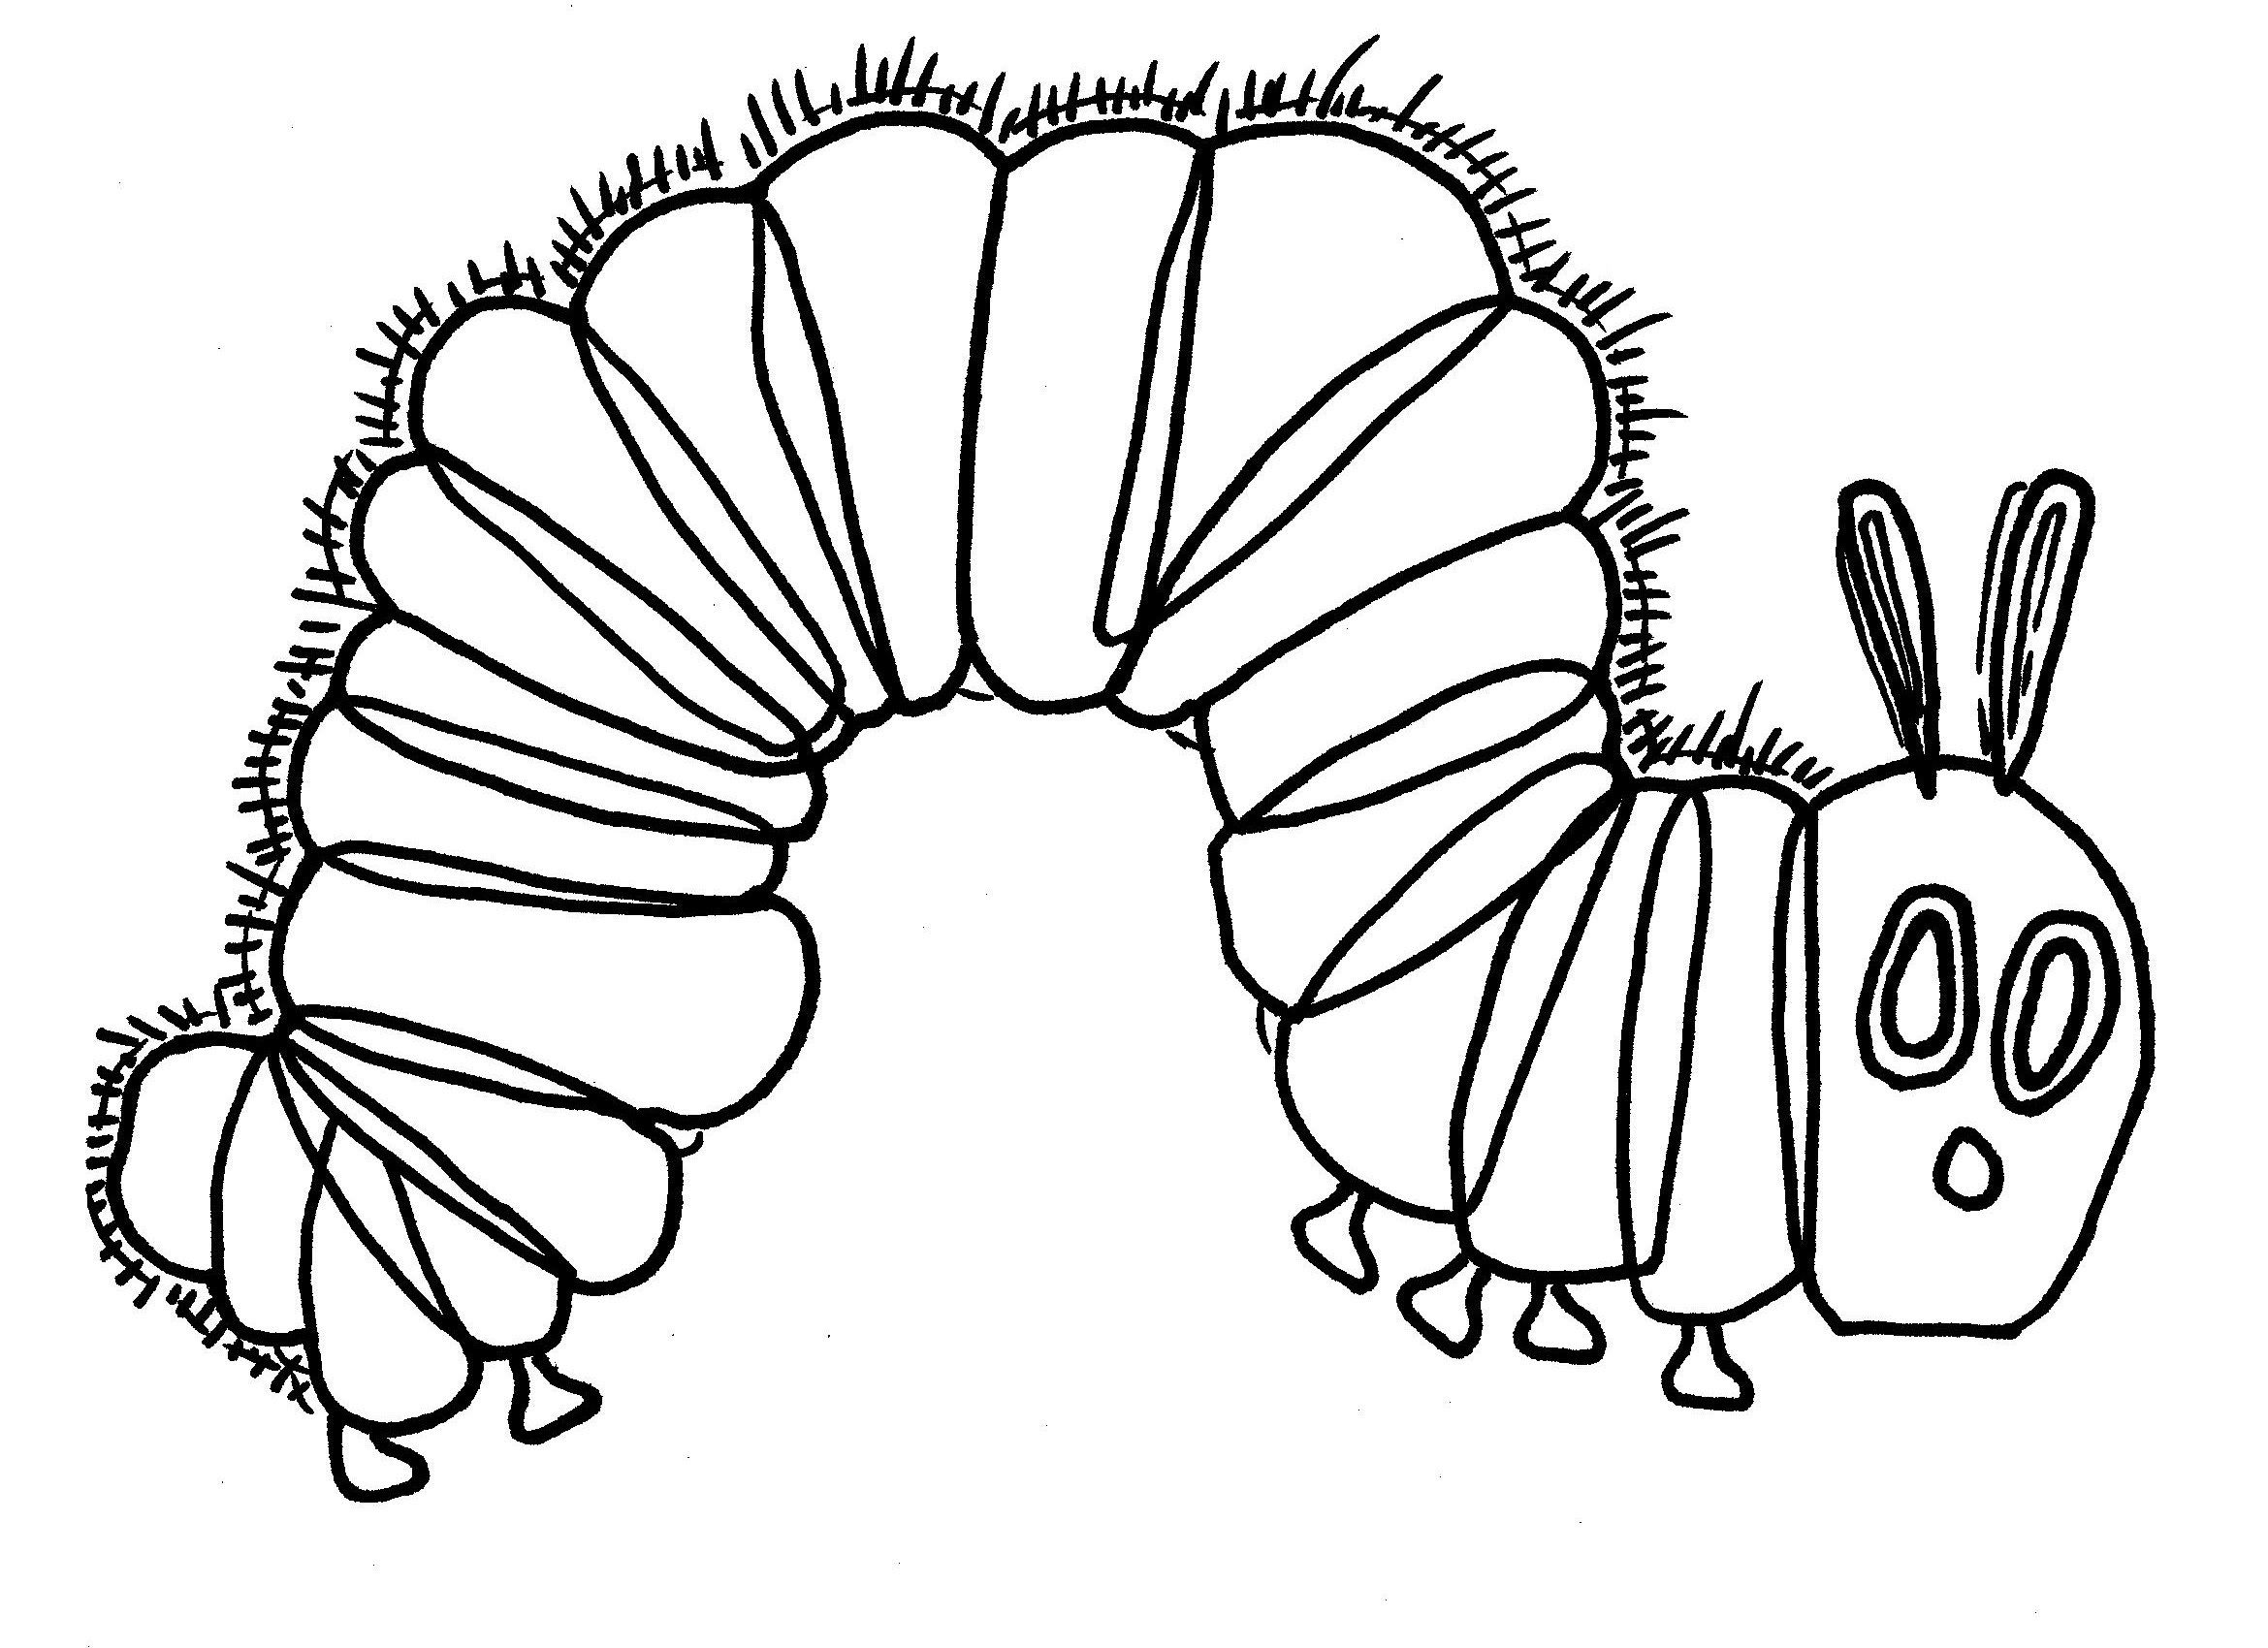 Caterpillar Smiley Face Coloring Pages For Kids Butterfly